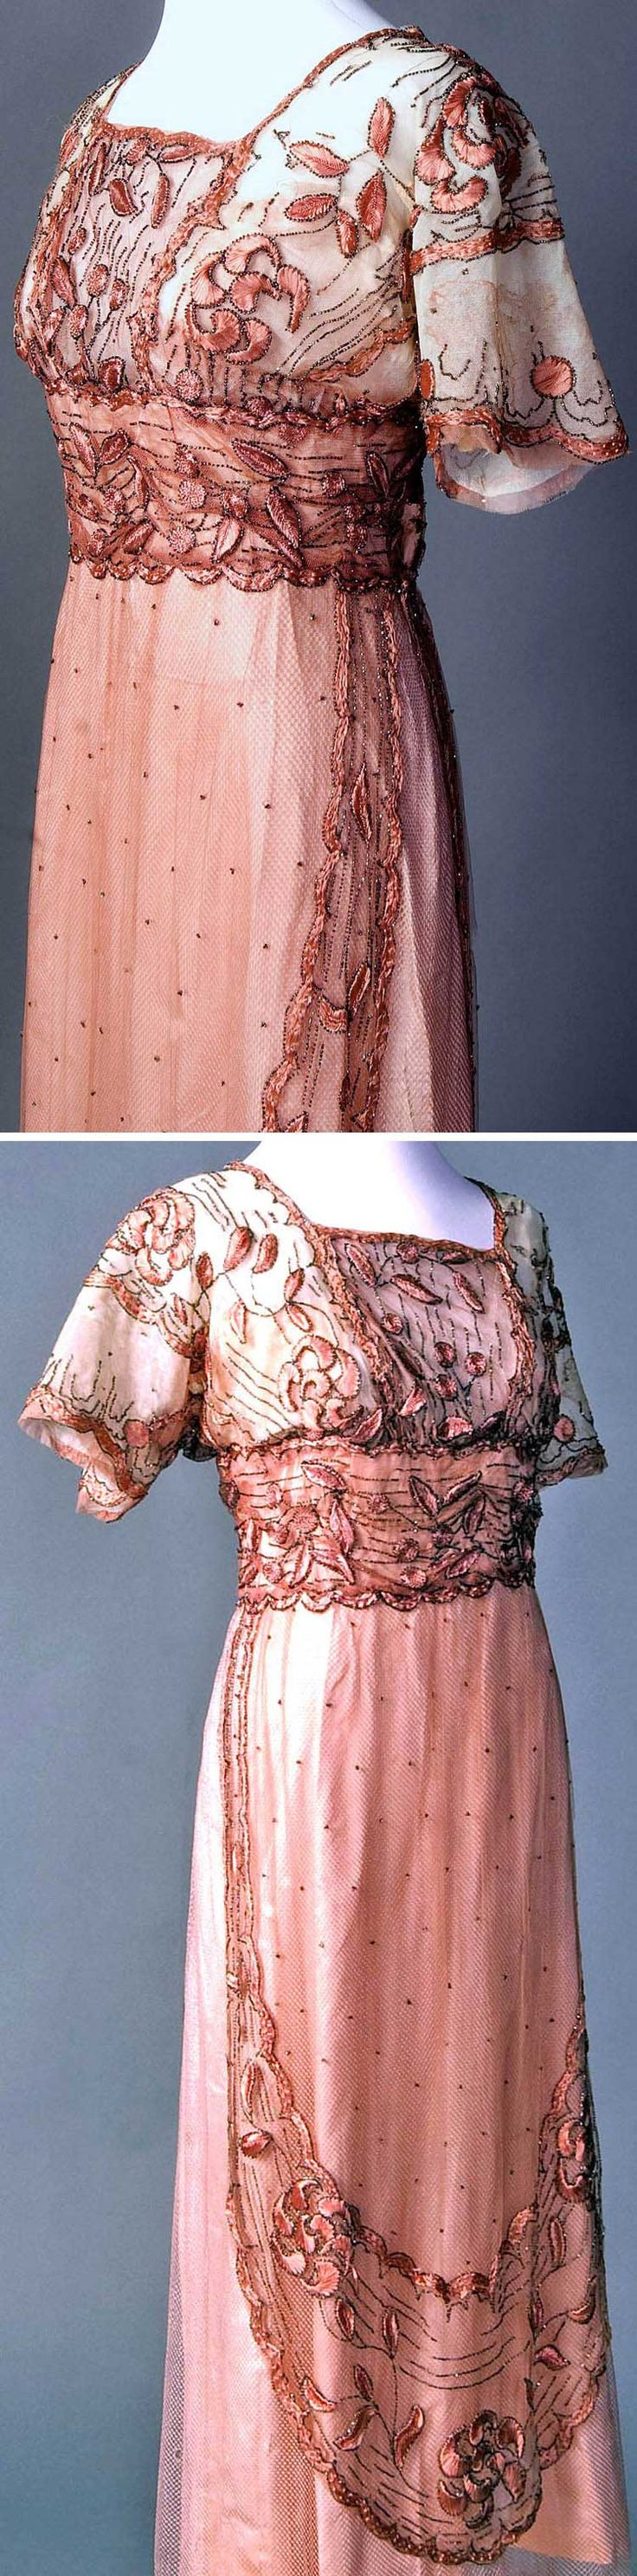 Evening dress, French, ca. 1911-15. Silk embroidery floss on silk net. Bodice, lined with lightly boned taffeta, has sleeves cut in T-shape, kimono style. Gunmetal bead trim, attached in the Luneville or tambour method. Smith College Historic Clothing